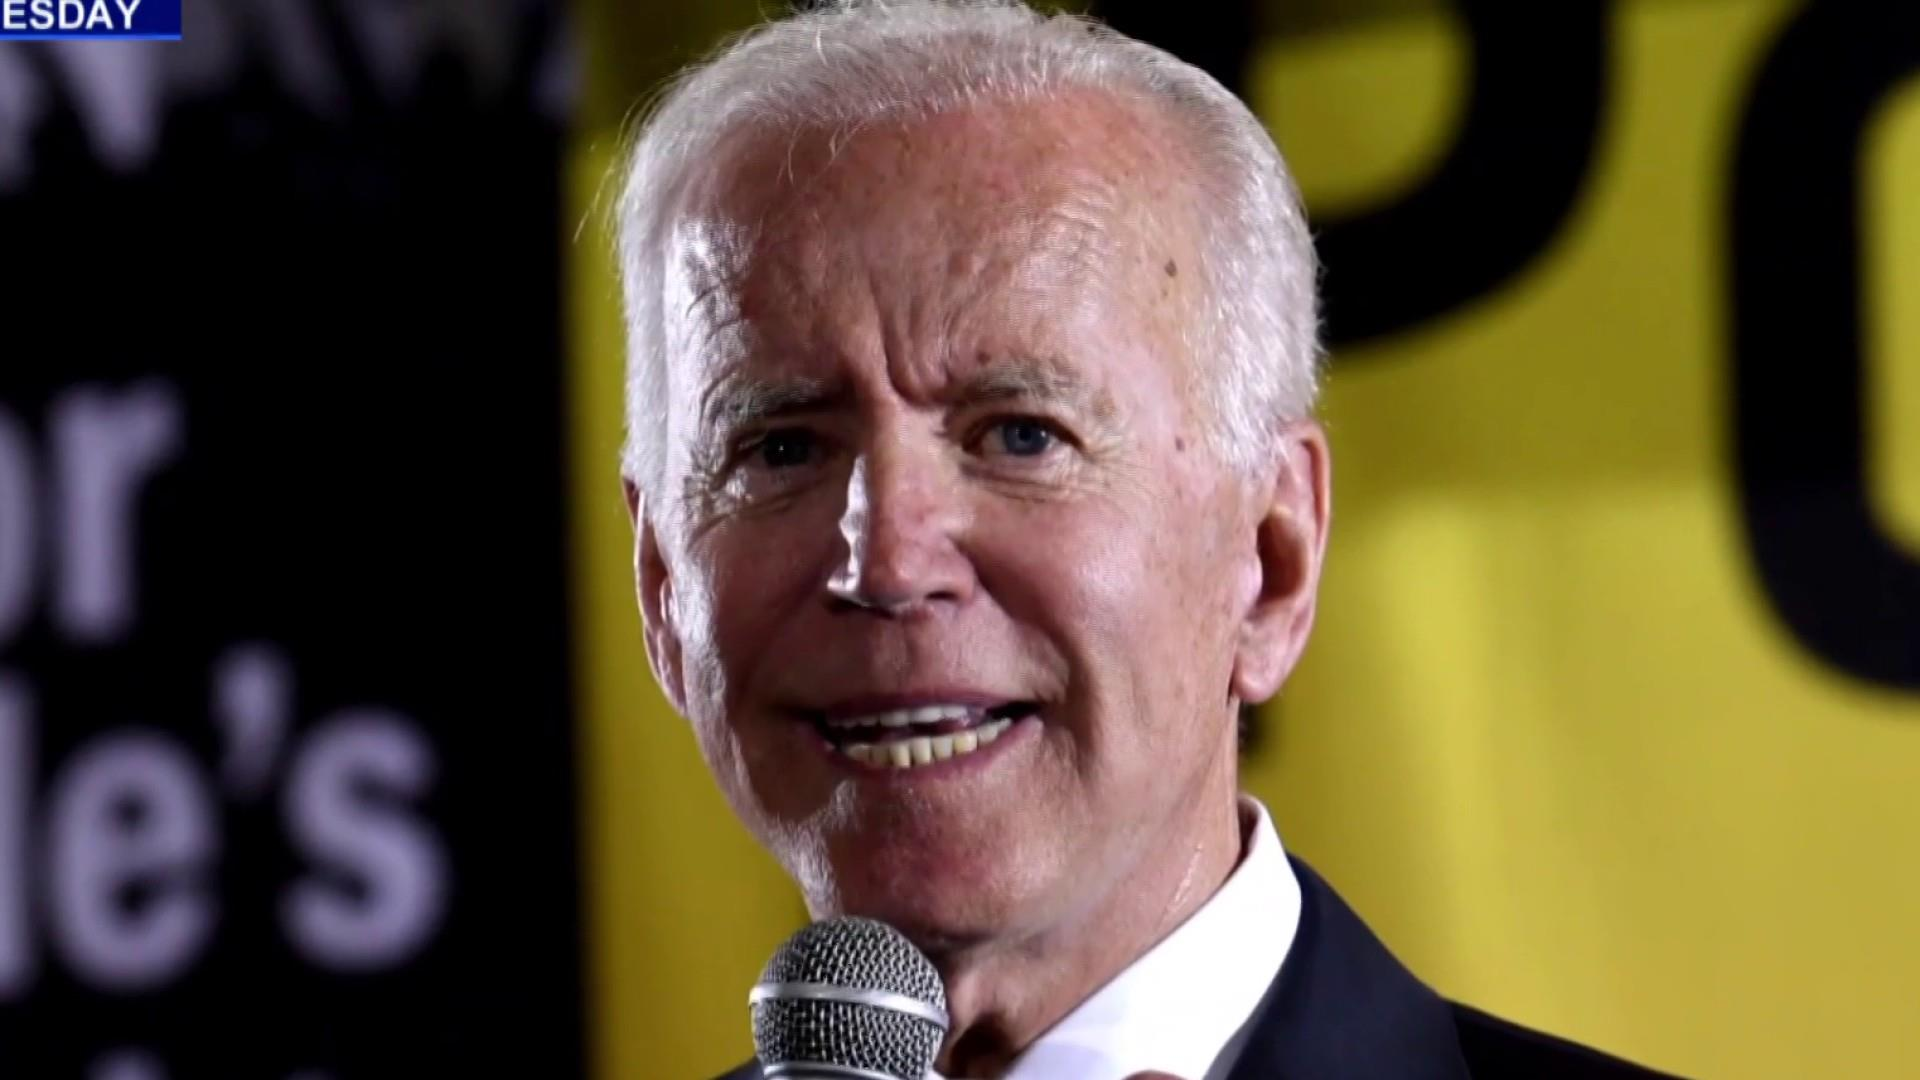 Biden's controversial comments a gaffe that could divide voters